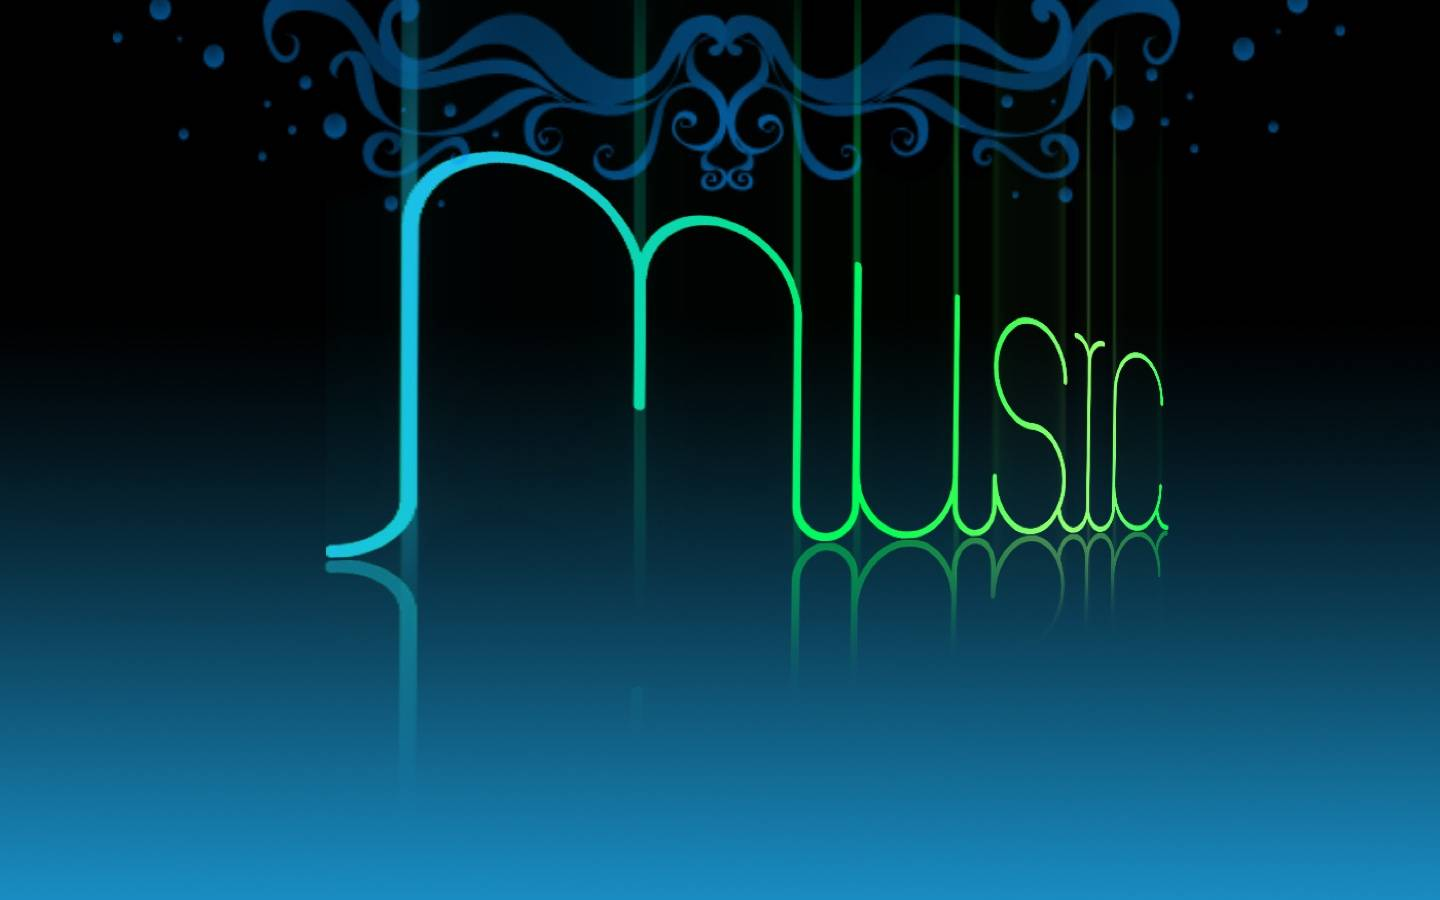 Cool music backgrounds wallpapers wallpaper cave - Wallpaper 1920x1080 music ...